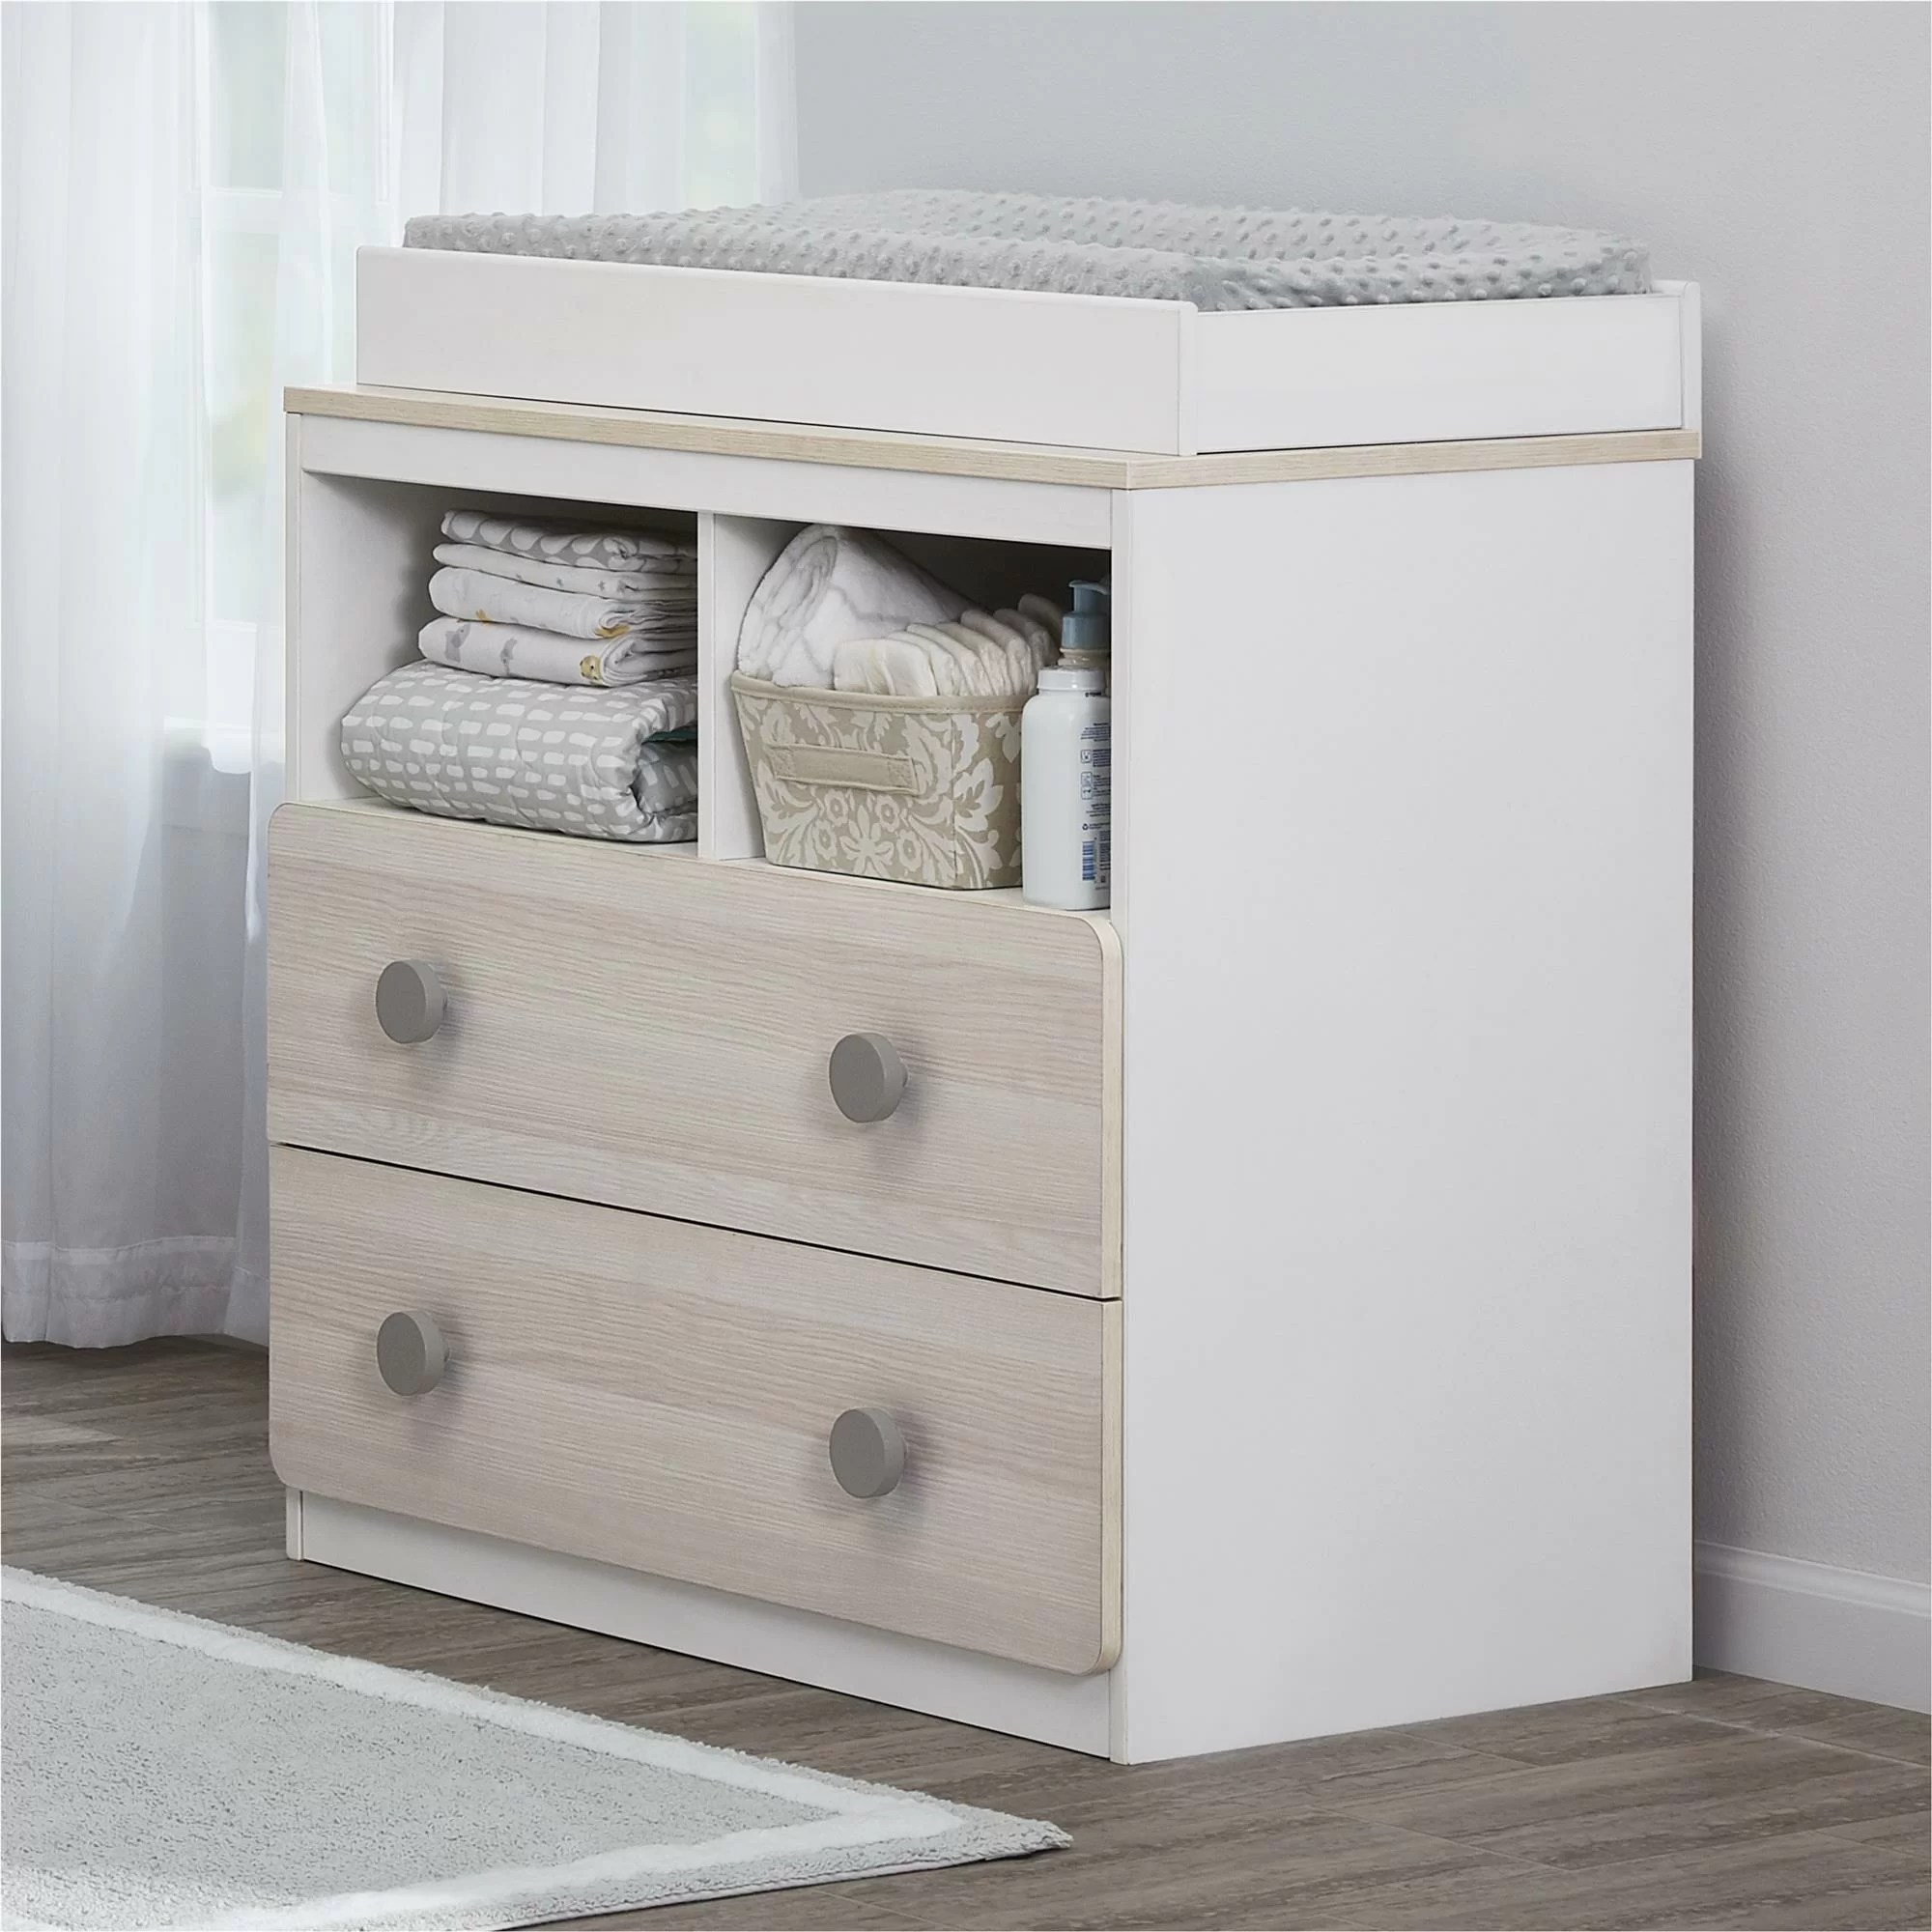 Changing Table Chest Of Drawers Prism Changing Table